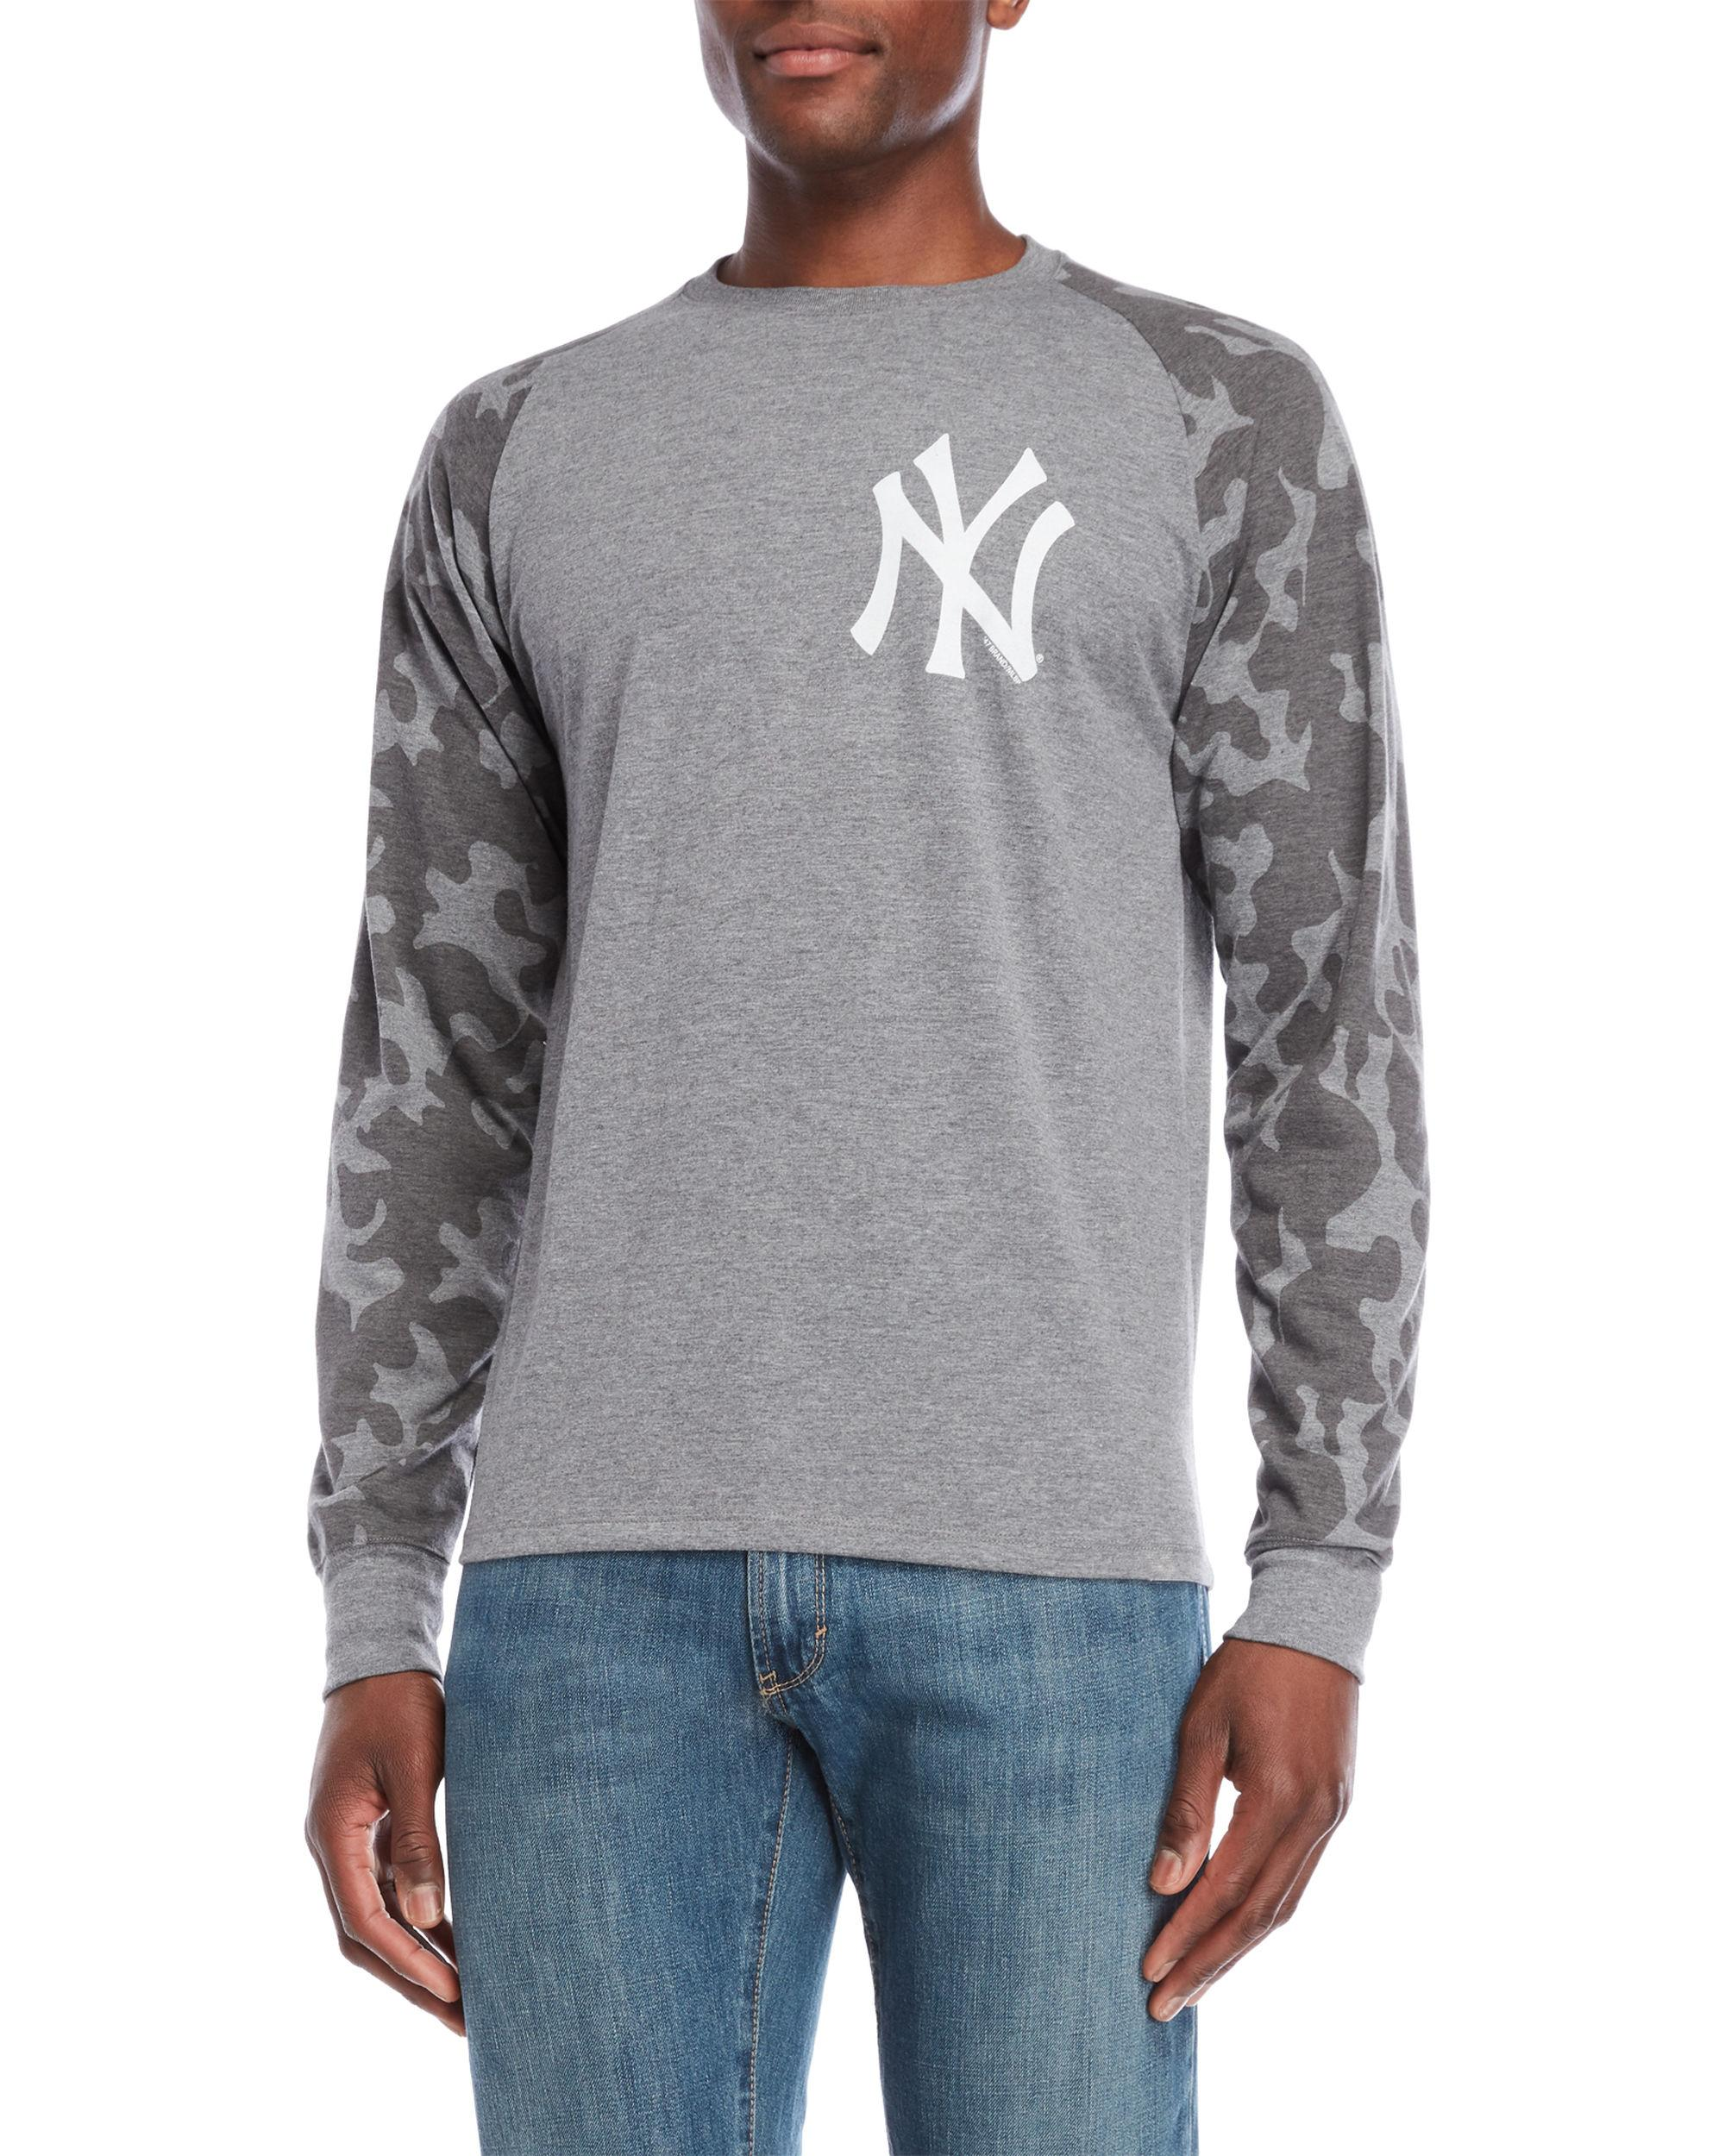 dcb6a538 Lyst - 47 Brand Grey Camo Raglan Sleeve Yankees Tee in Gray for Men